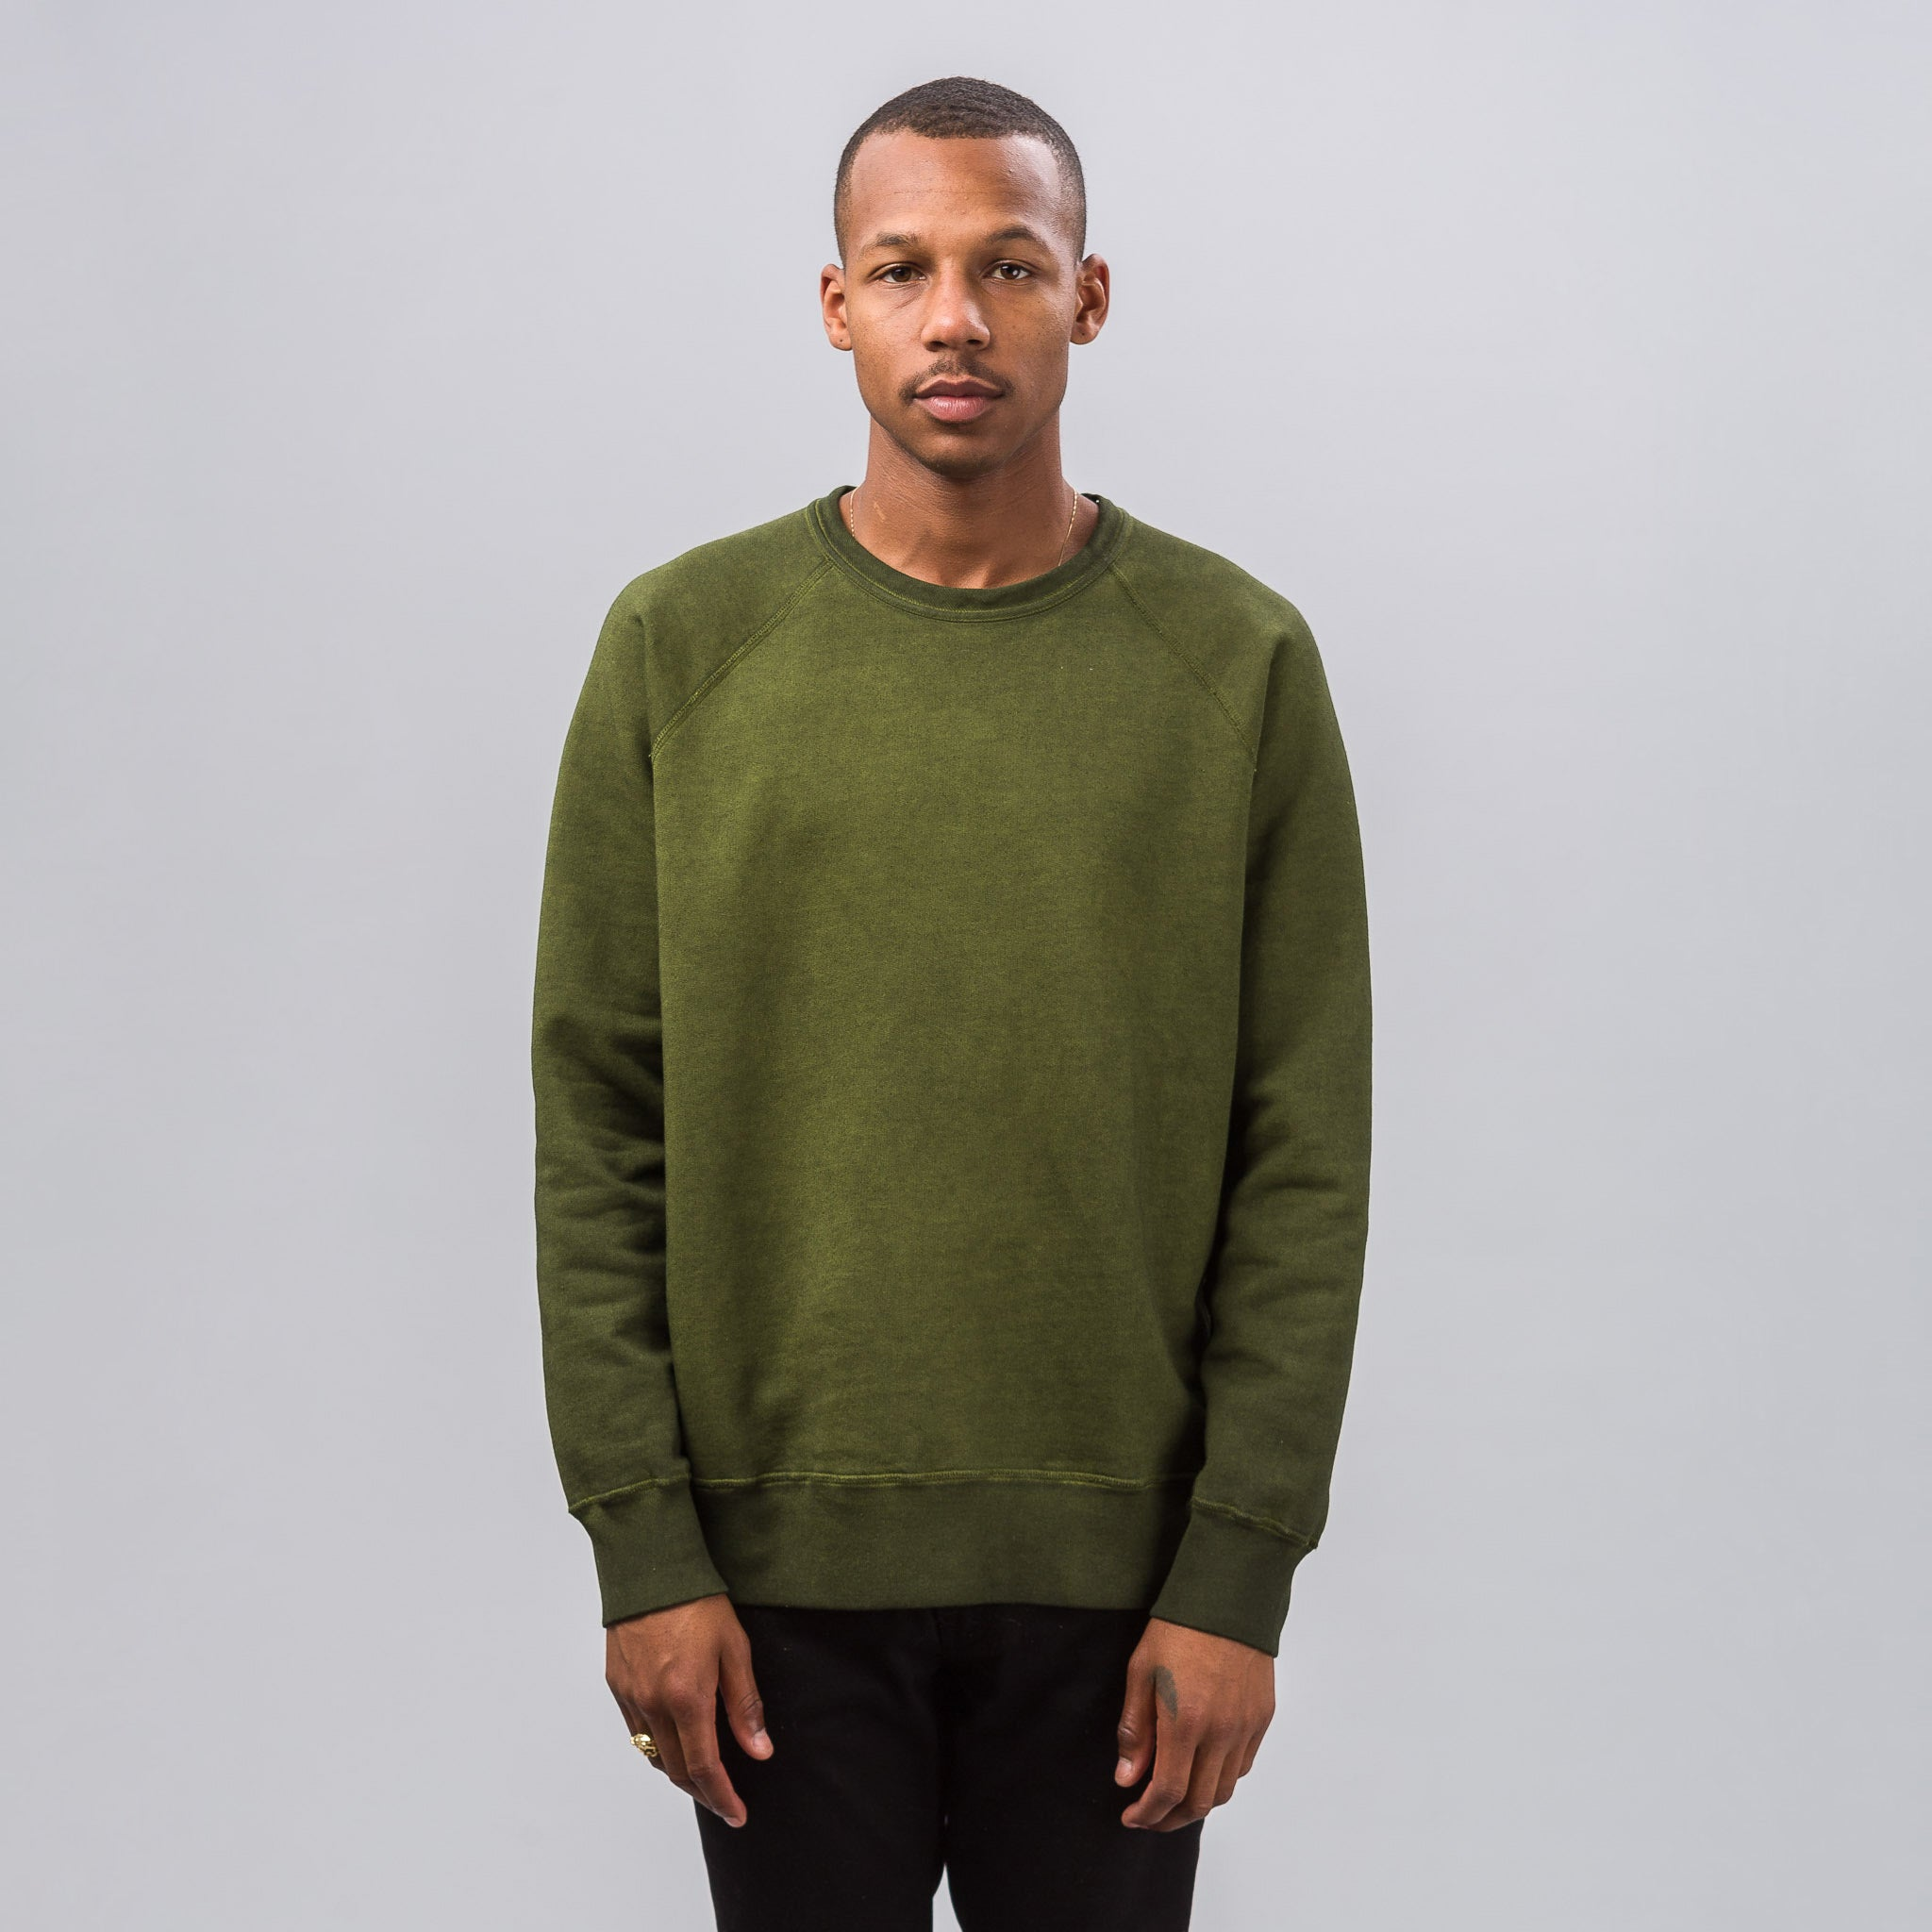 Reversible Sweatshirt in Solaro Lemongrass